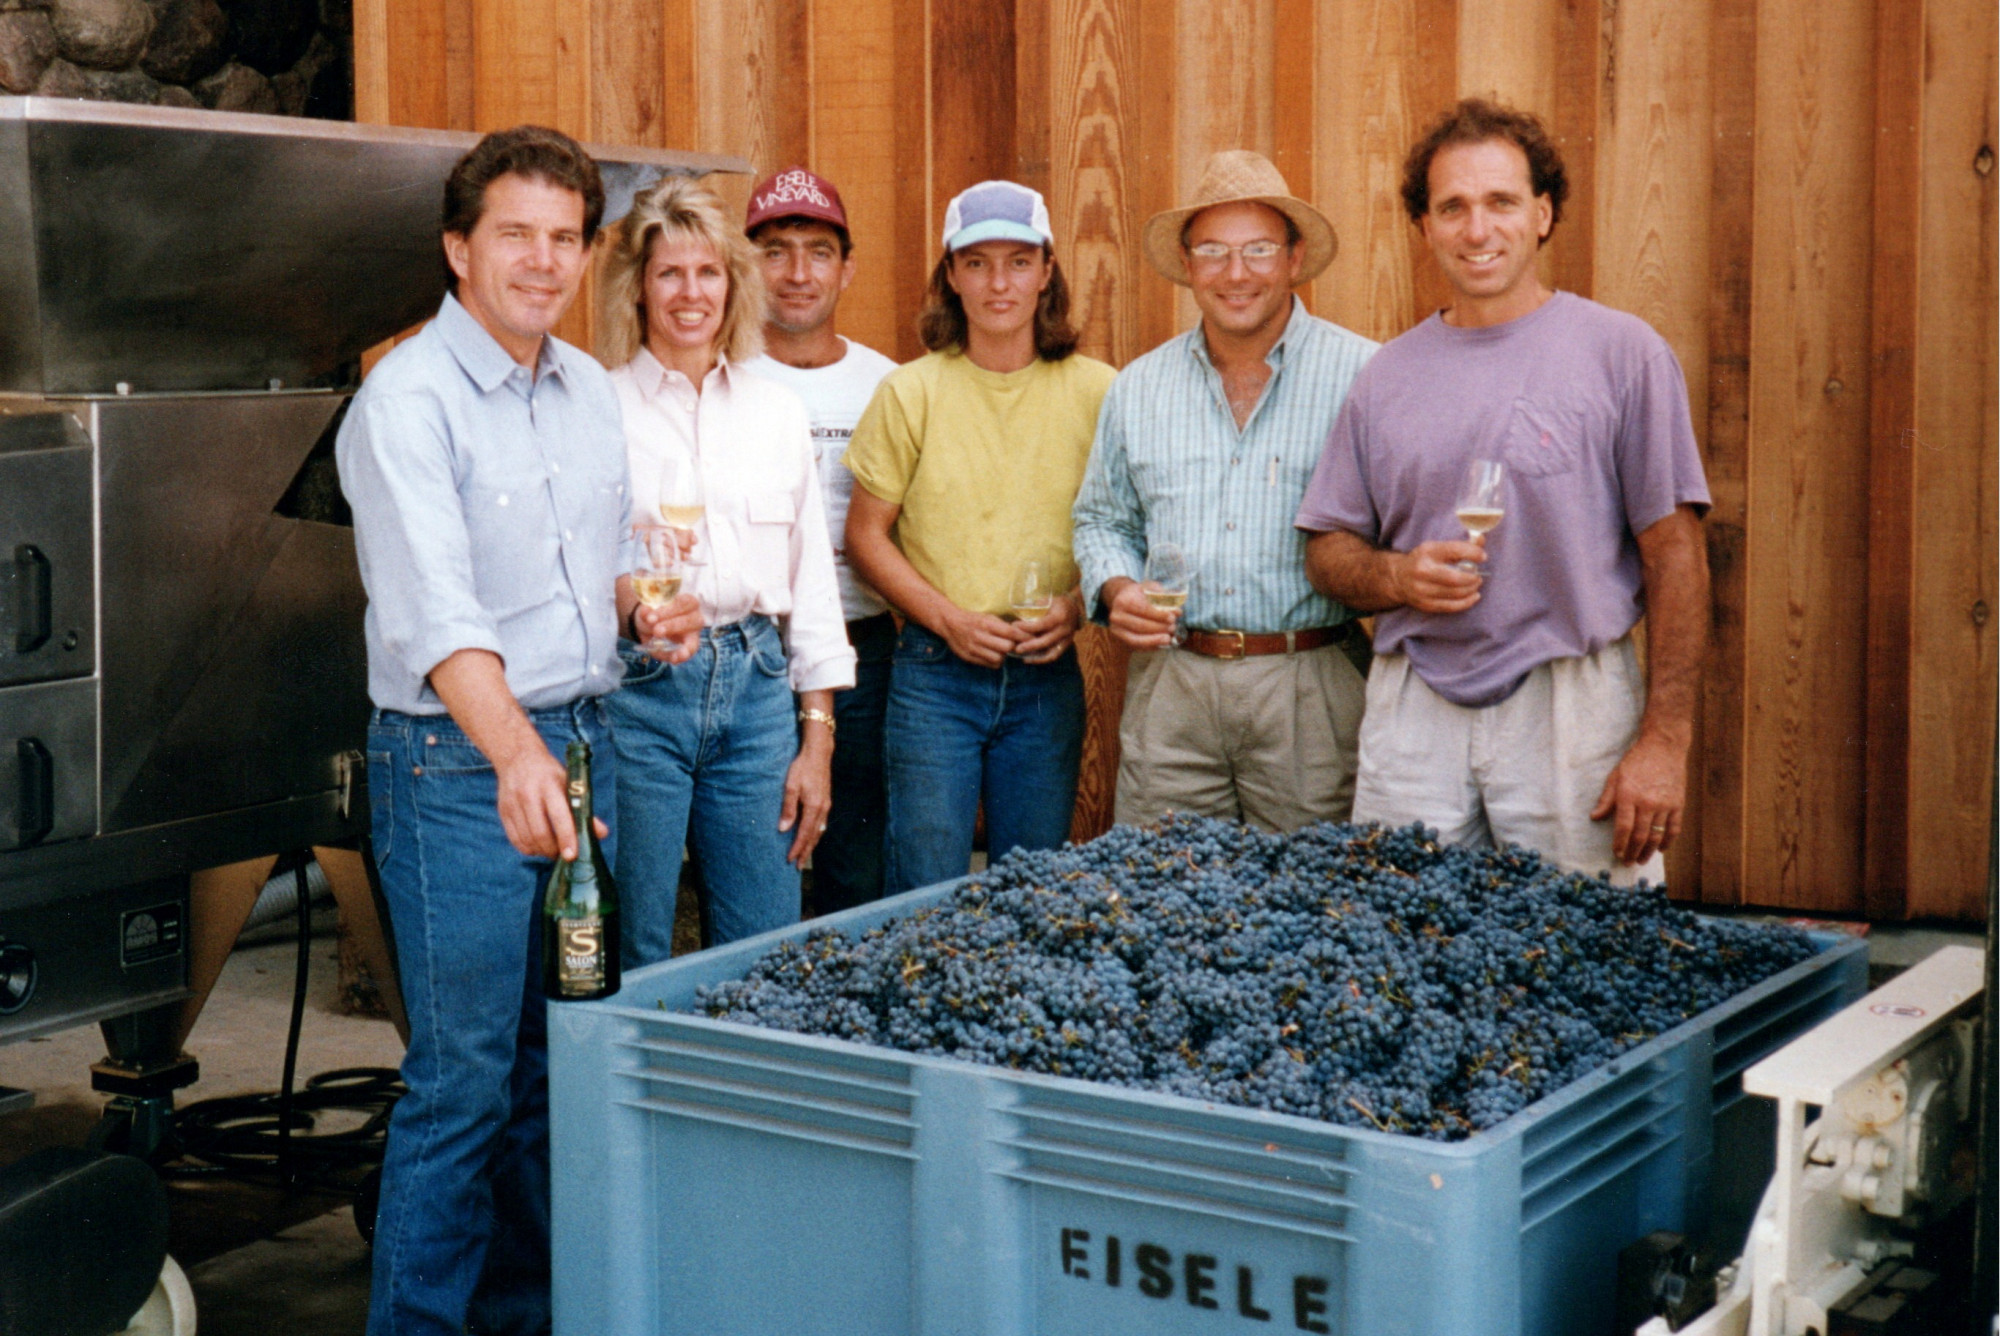 First crush at the new Araujo Estate winery in 1992 with Bart, Daphne, Aruro Llamas (cellar master, Mia Klein and Tony Soter (consulting winemakers) and David Abreu (vineyard manager)